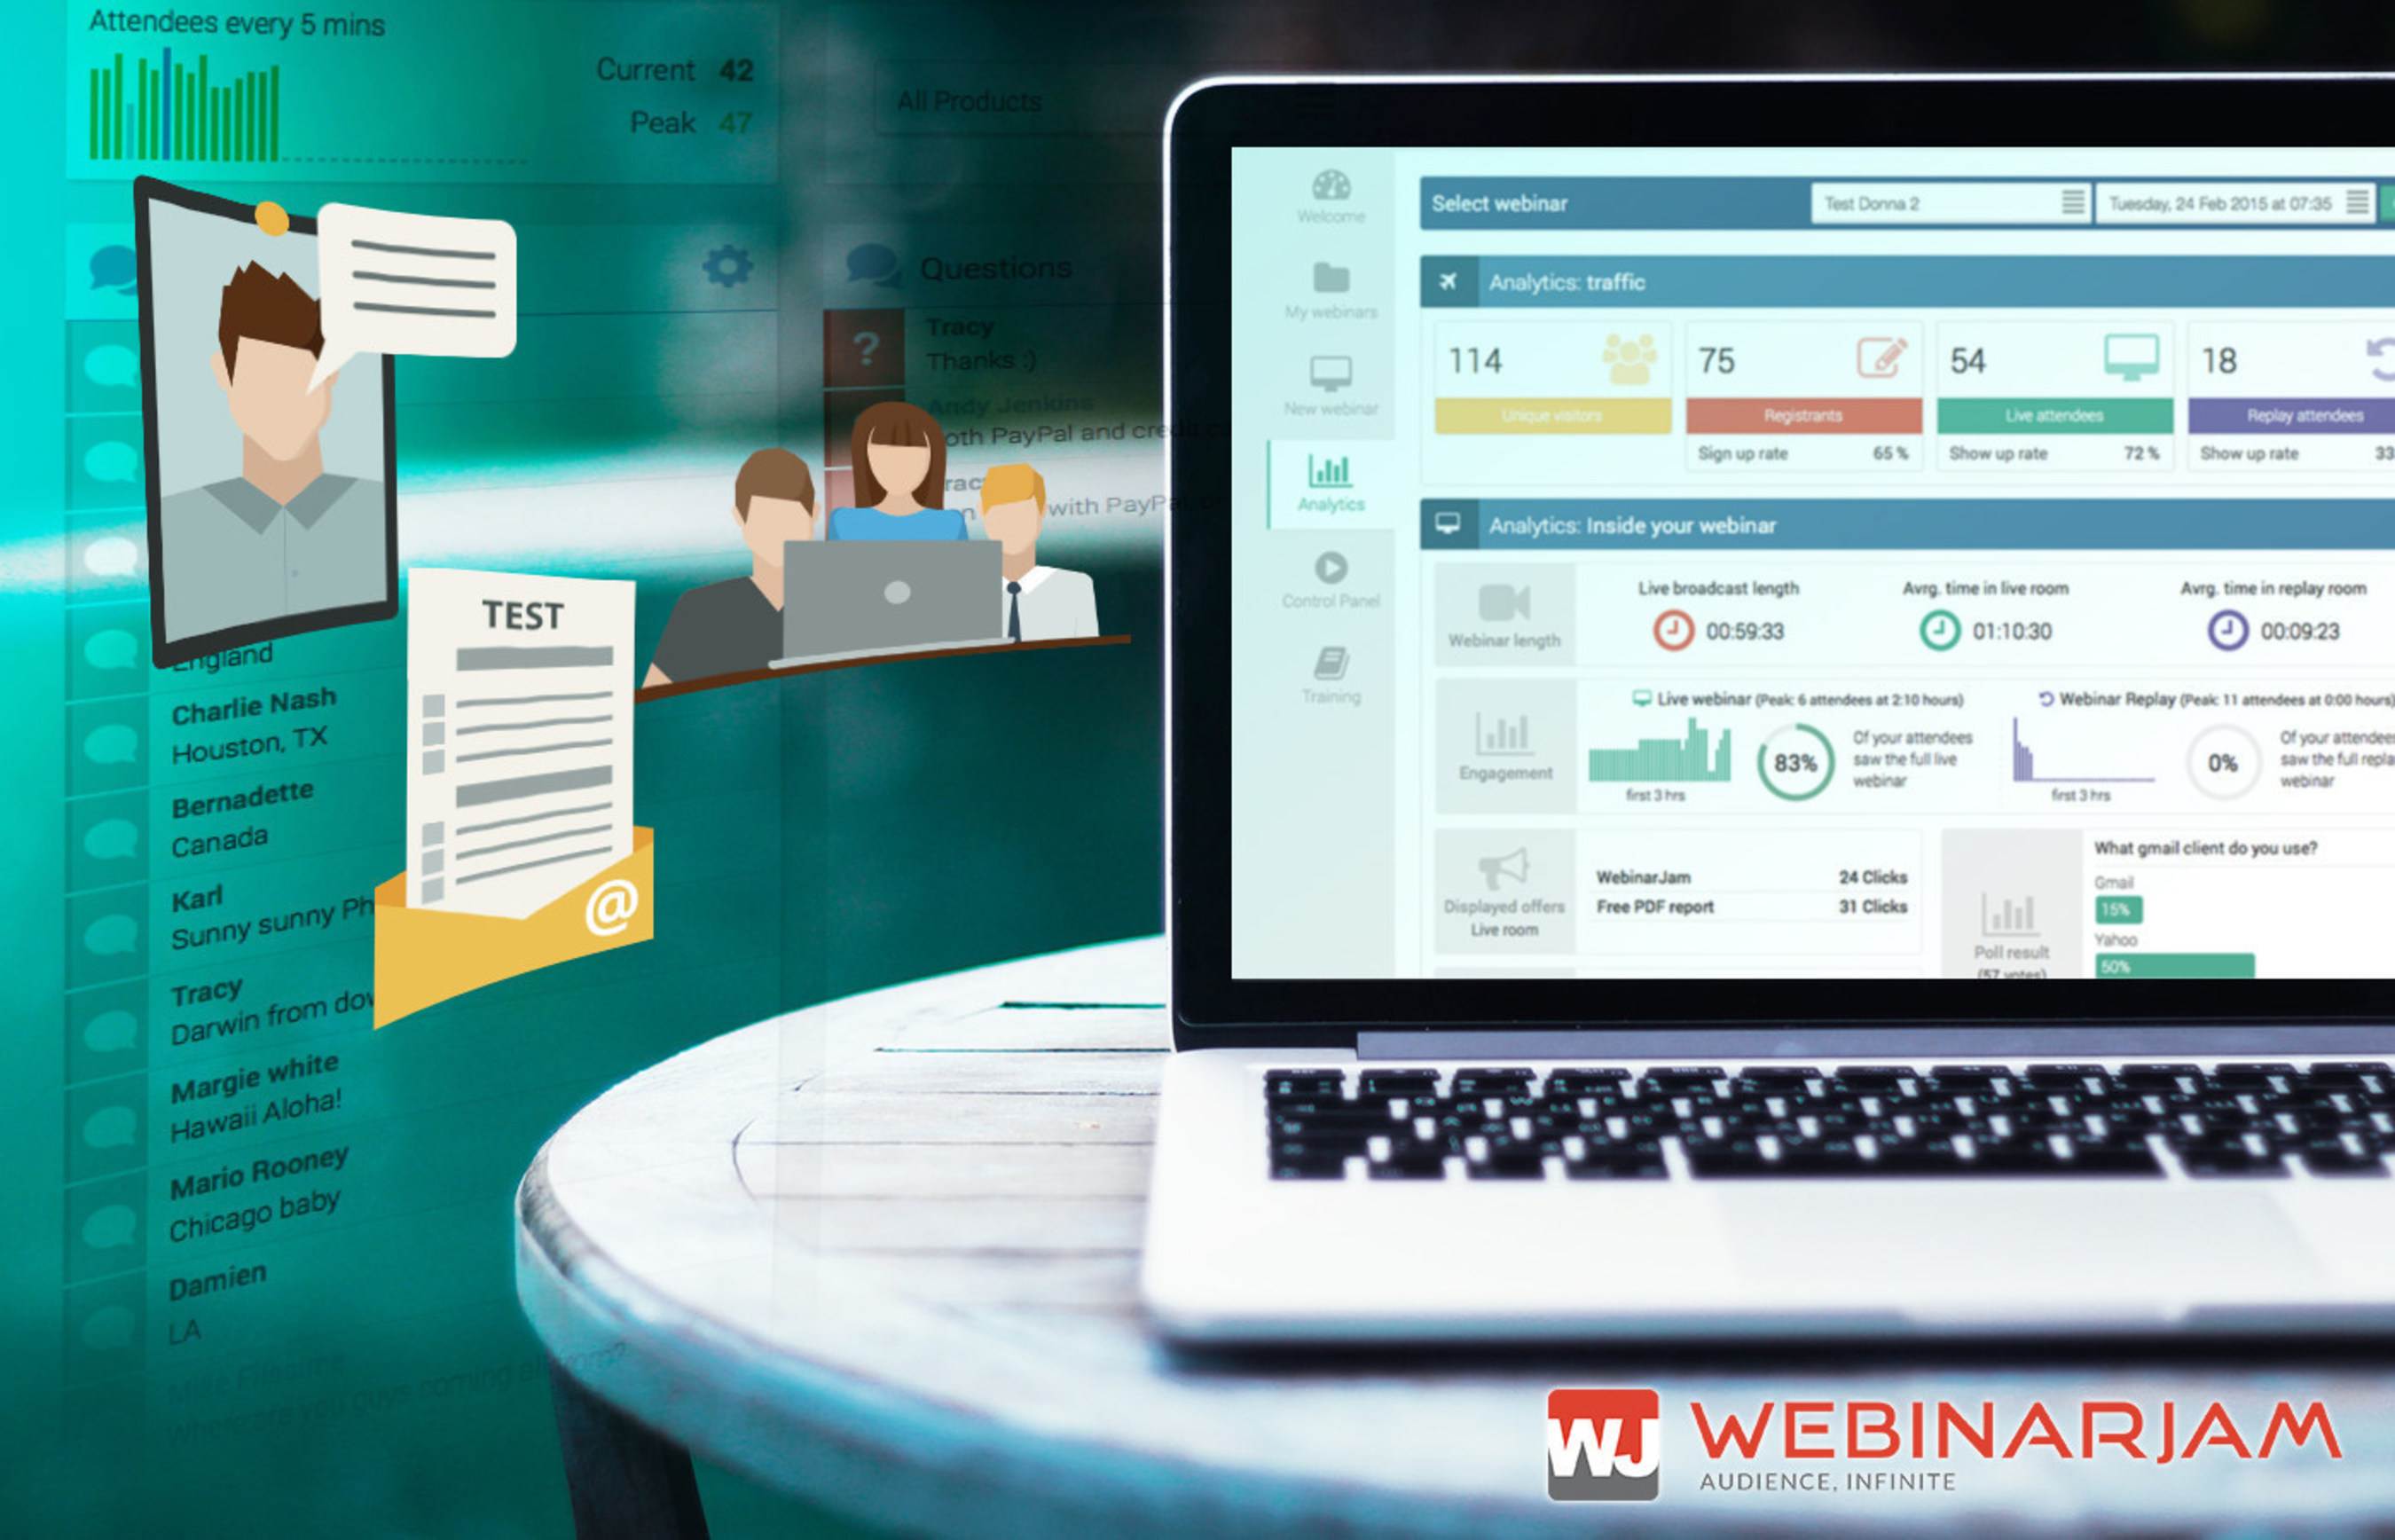 Genesis Digital's Killer App WebinarJam Studio Gets Even Better, Stays on the Bleeding Edge of Fast Responsive Webinars